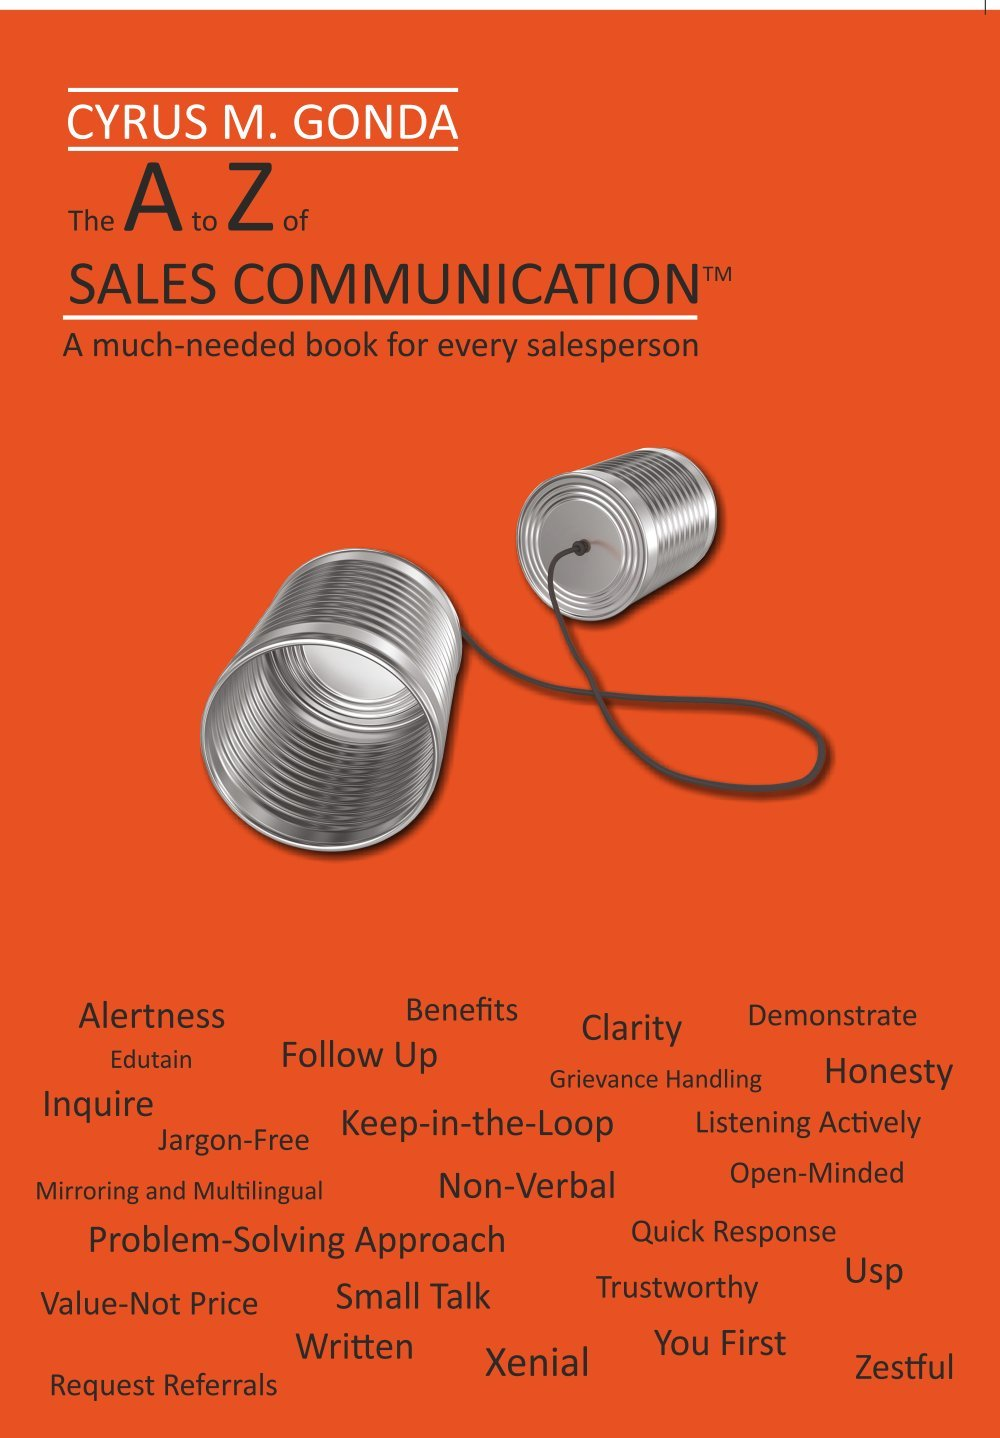 The A – Z Of Sales Communication ™